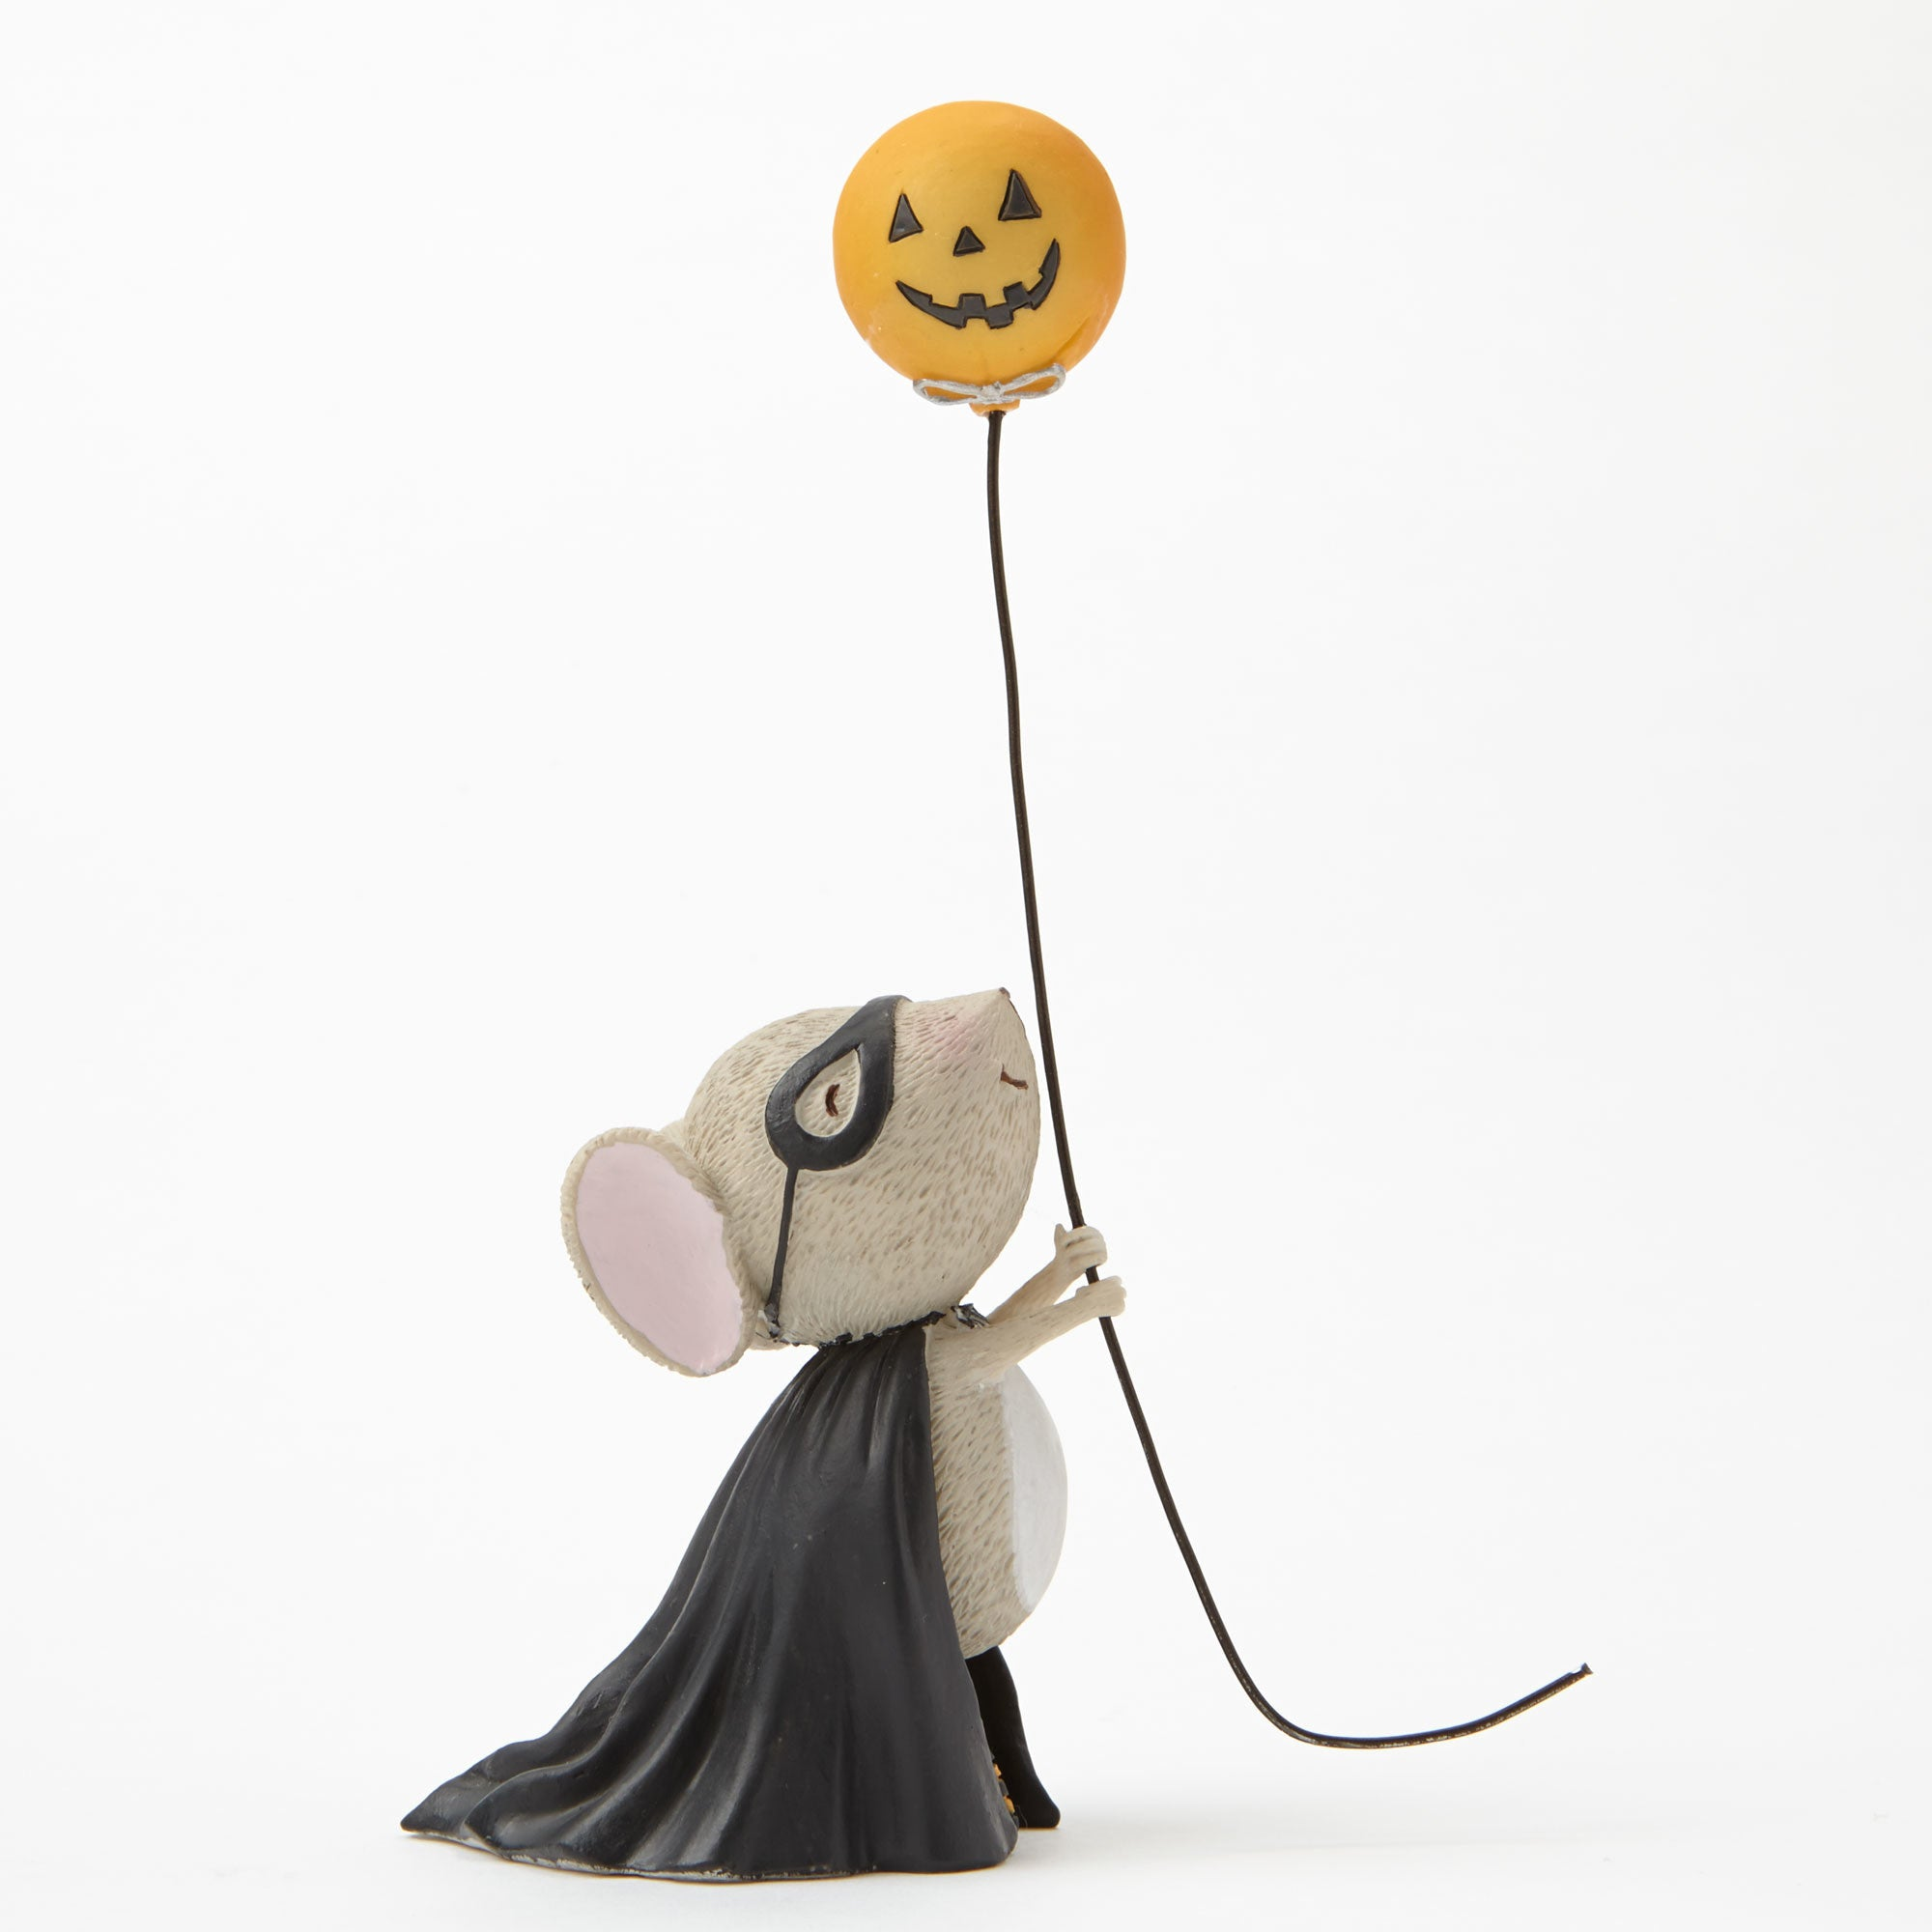 Stacey Yacula Mouse with Pumpkin Balloon Halloween Figurine